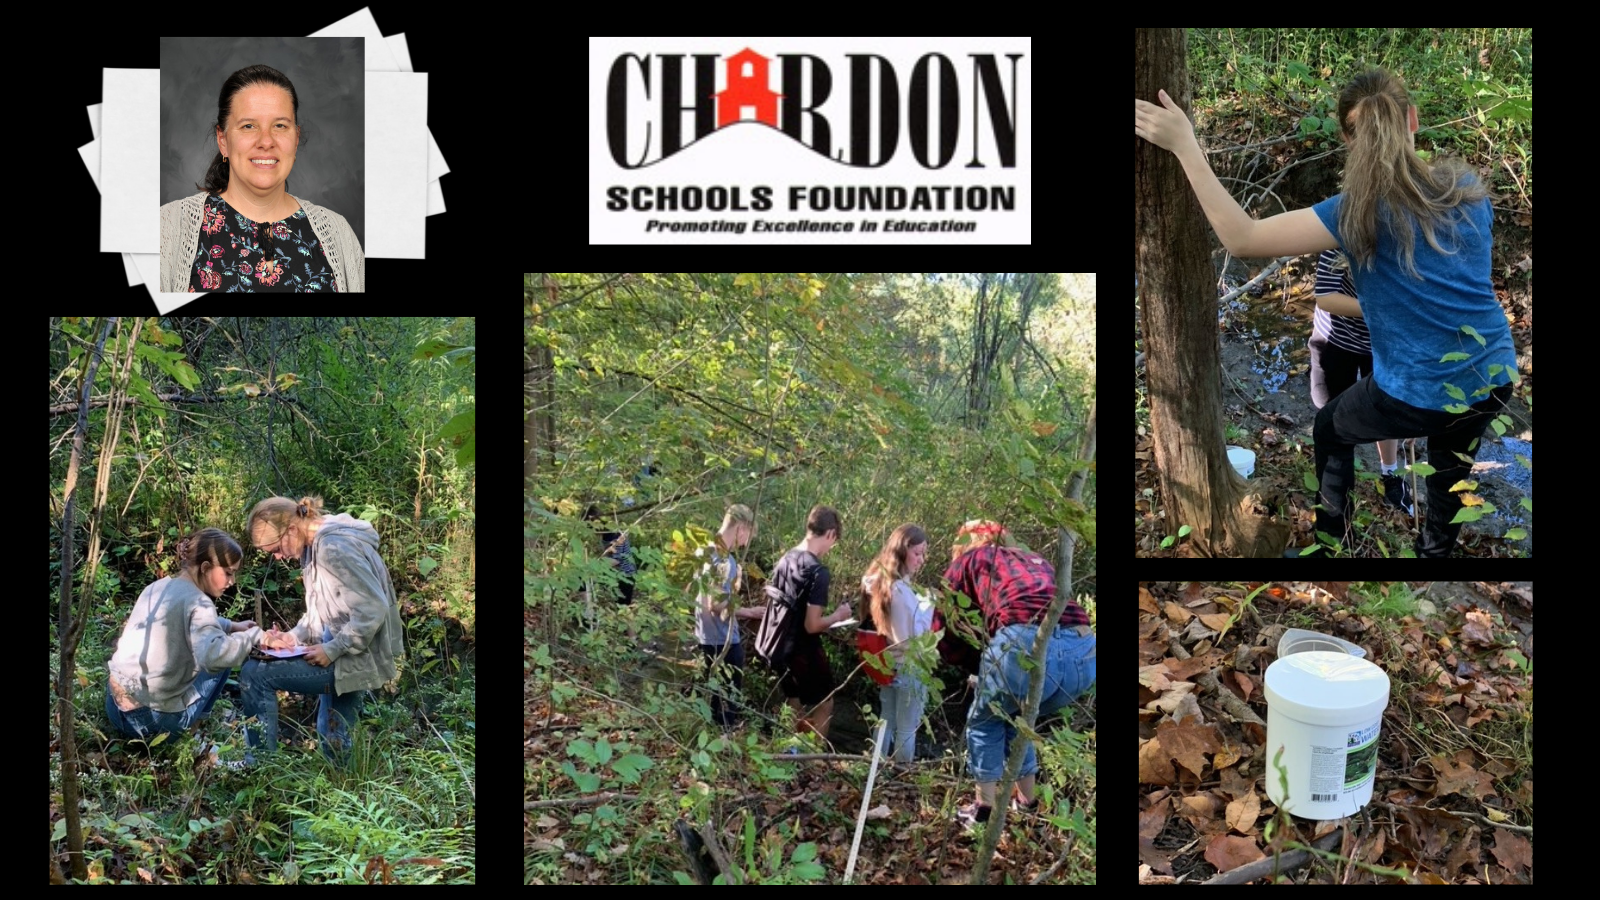 collage graphic:  (from top, l to r) staff photo of CHS science teacher Dr. Rebecca Schneider (photo credit:  Pastor Photography); Chardon Schools Foundation Promoting Excellence in Education logo - red, white and black; 3 action photos of students outdoors using water quality testing kits; one photo of a water testing kit - appears as a pail